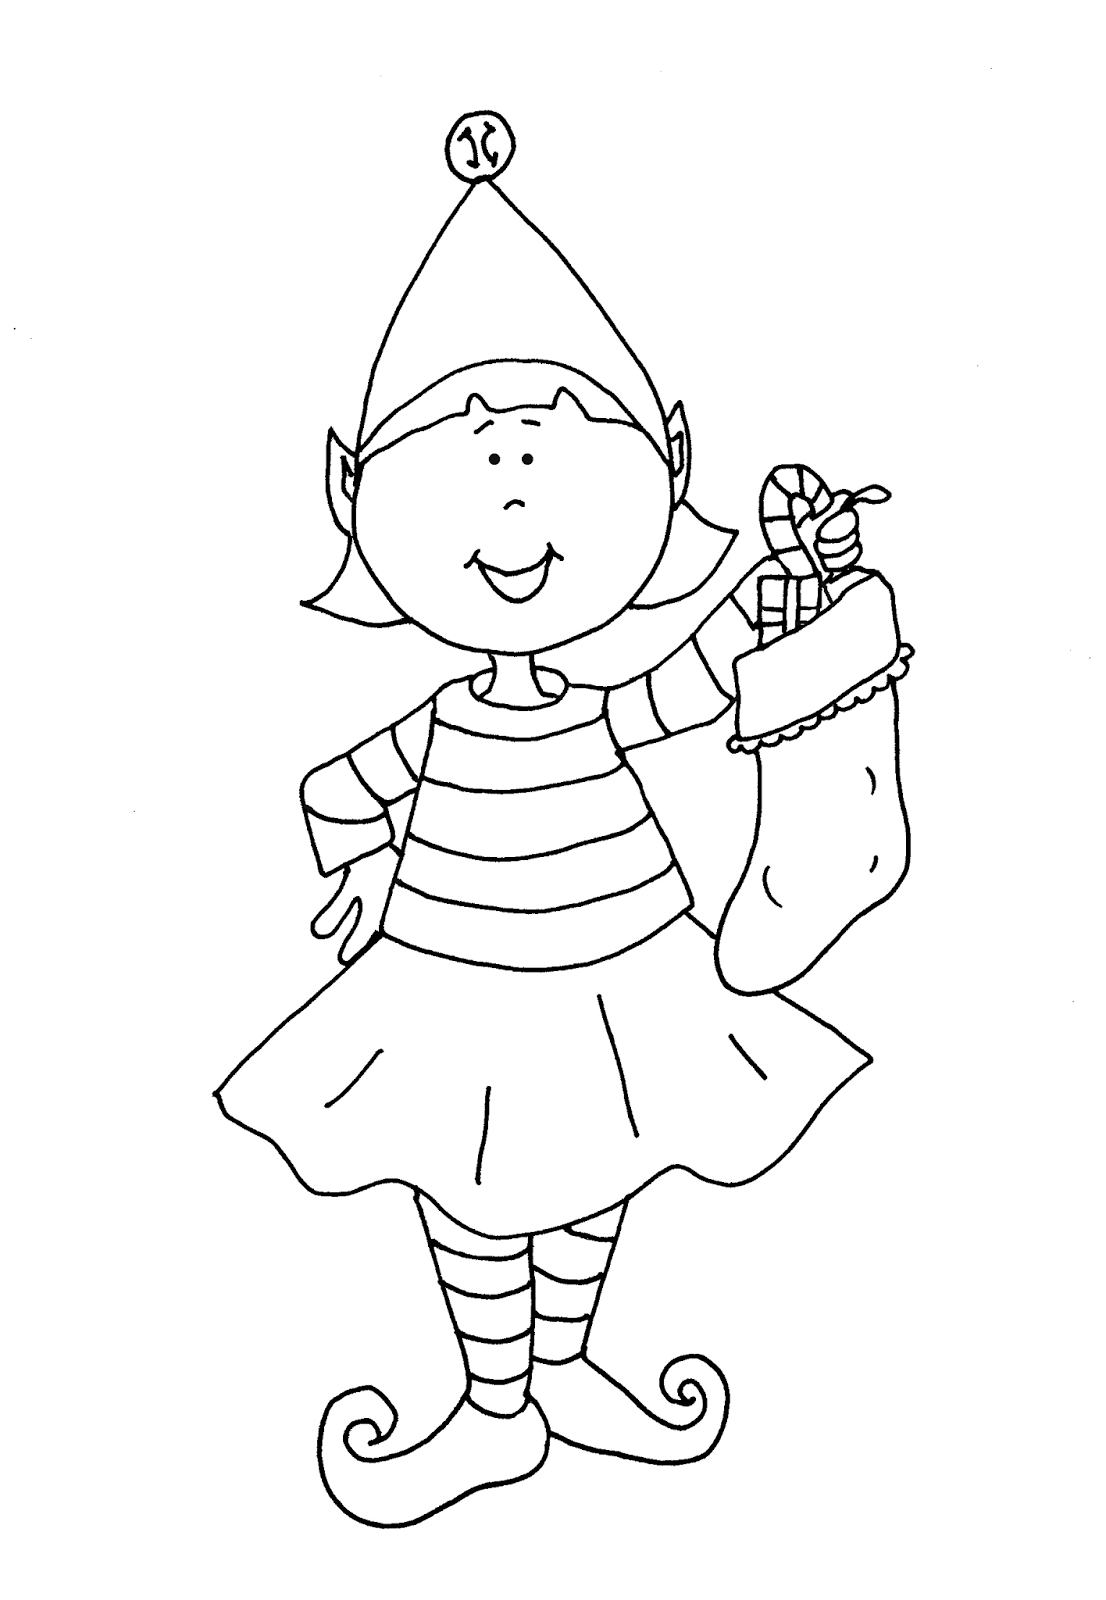 Elf Girl Free Christmas Coloring Pages Printable Christmas Coloring Pages Coloring Pages